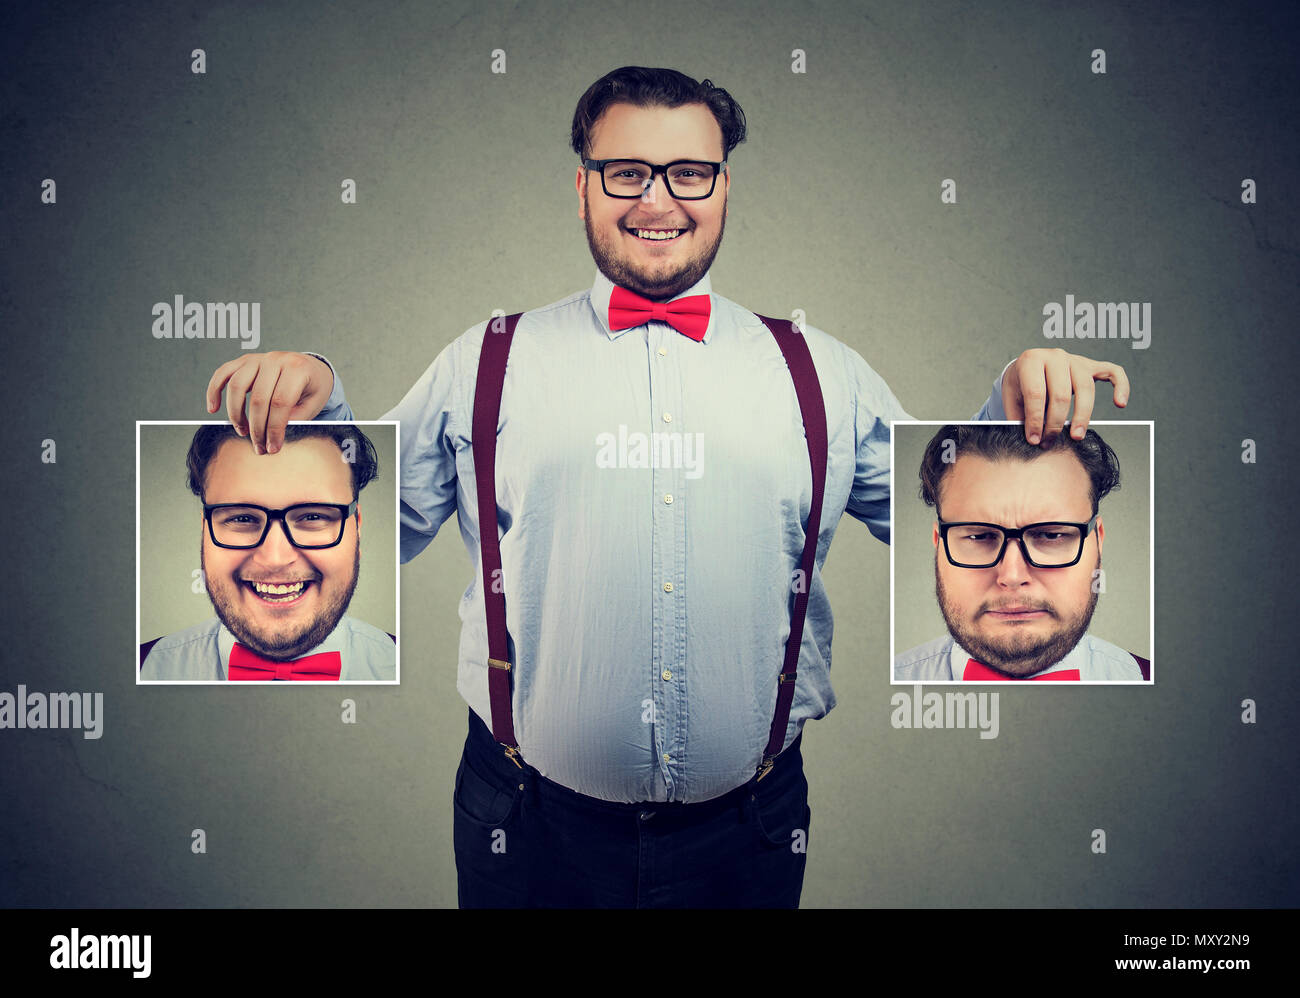 Young cheerful man in glasses holding pictures with good and bad emotions having mood swings and smiling at camera - Stock Image